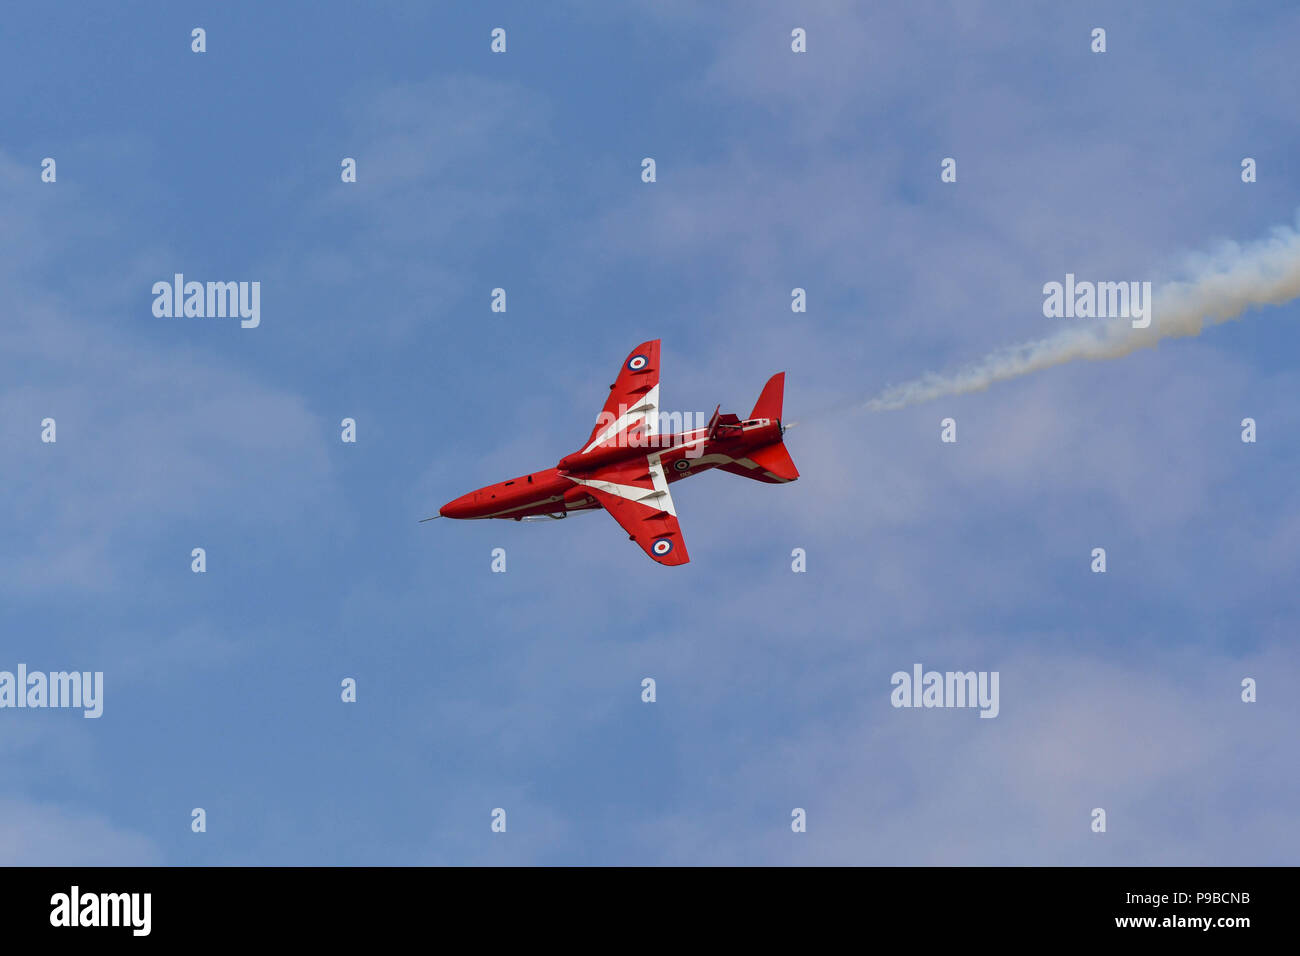 Single Hawk jet of the Royal Air Force aerobatic team, the Red Arrows, rolling at the Royal International Air Tattoo 2018 Stock Photo